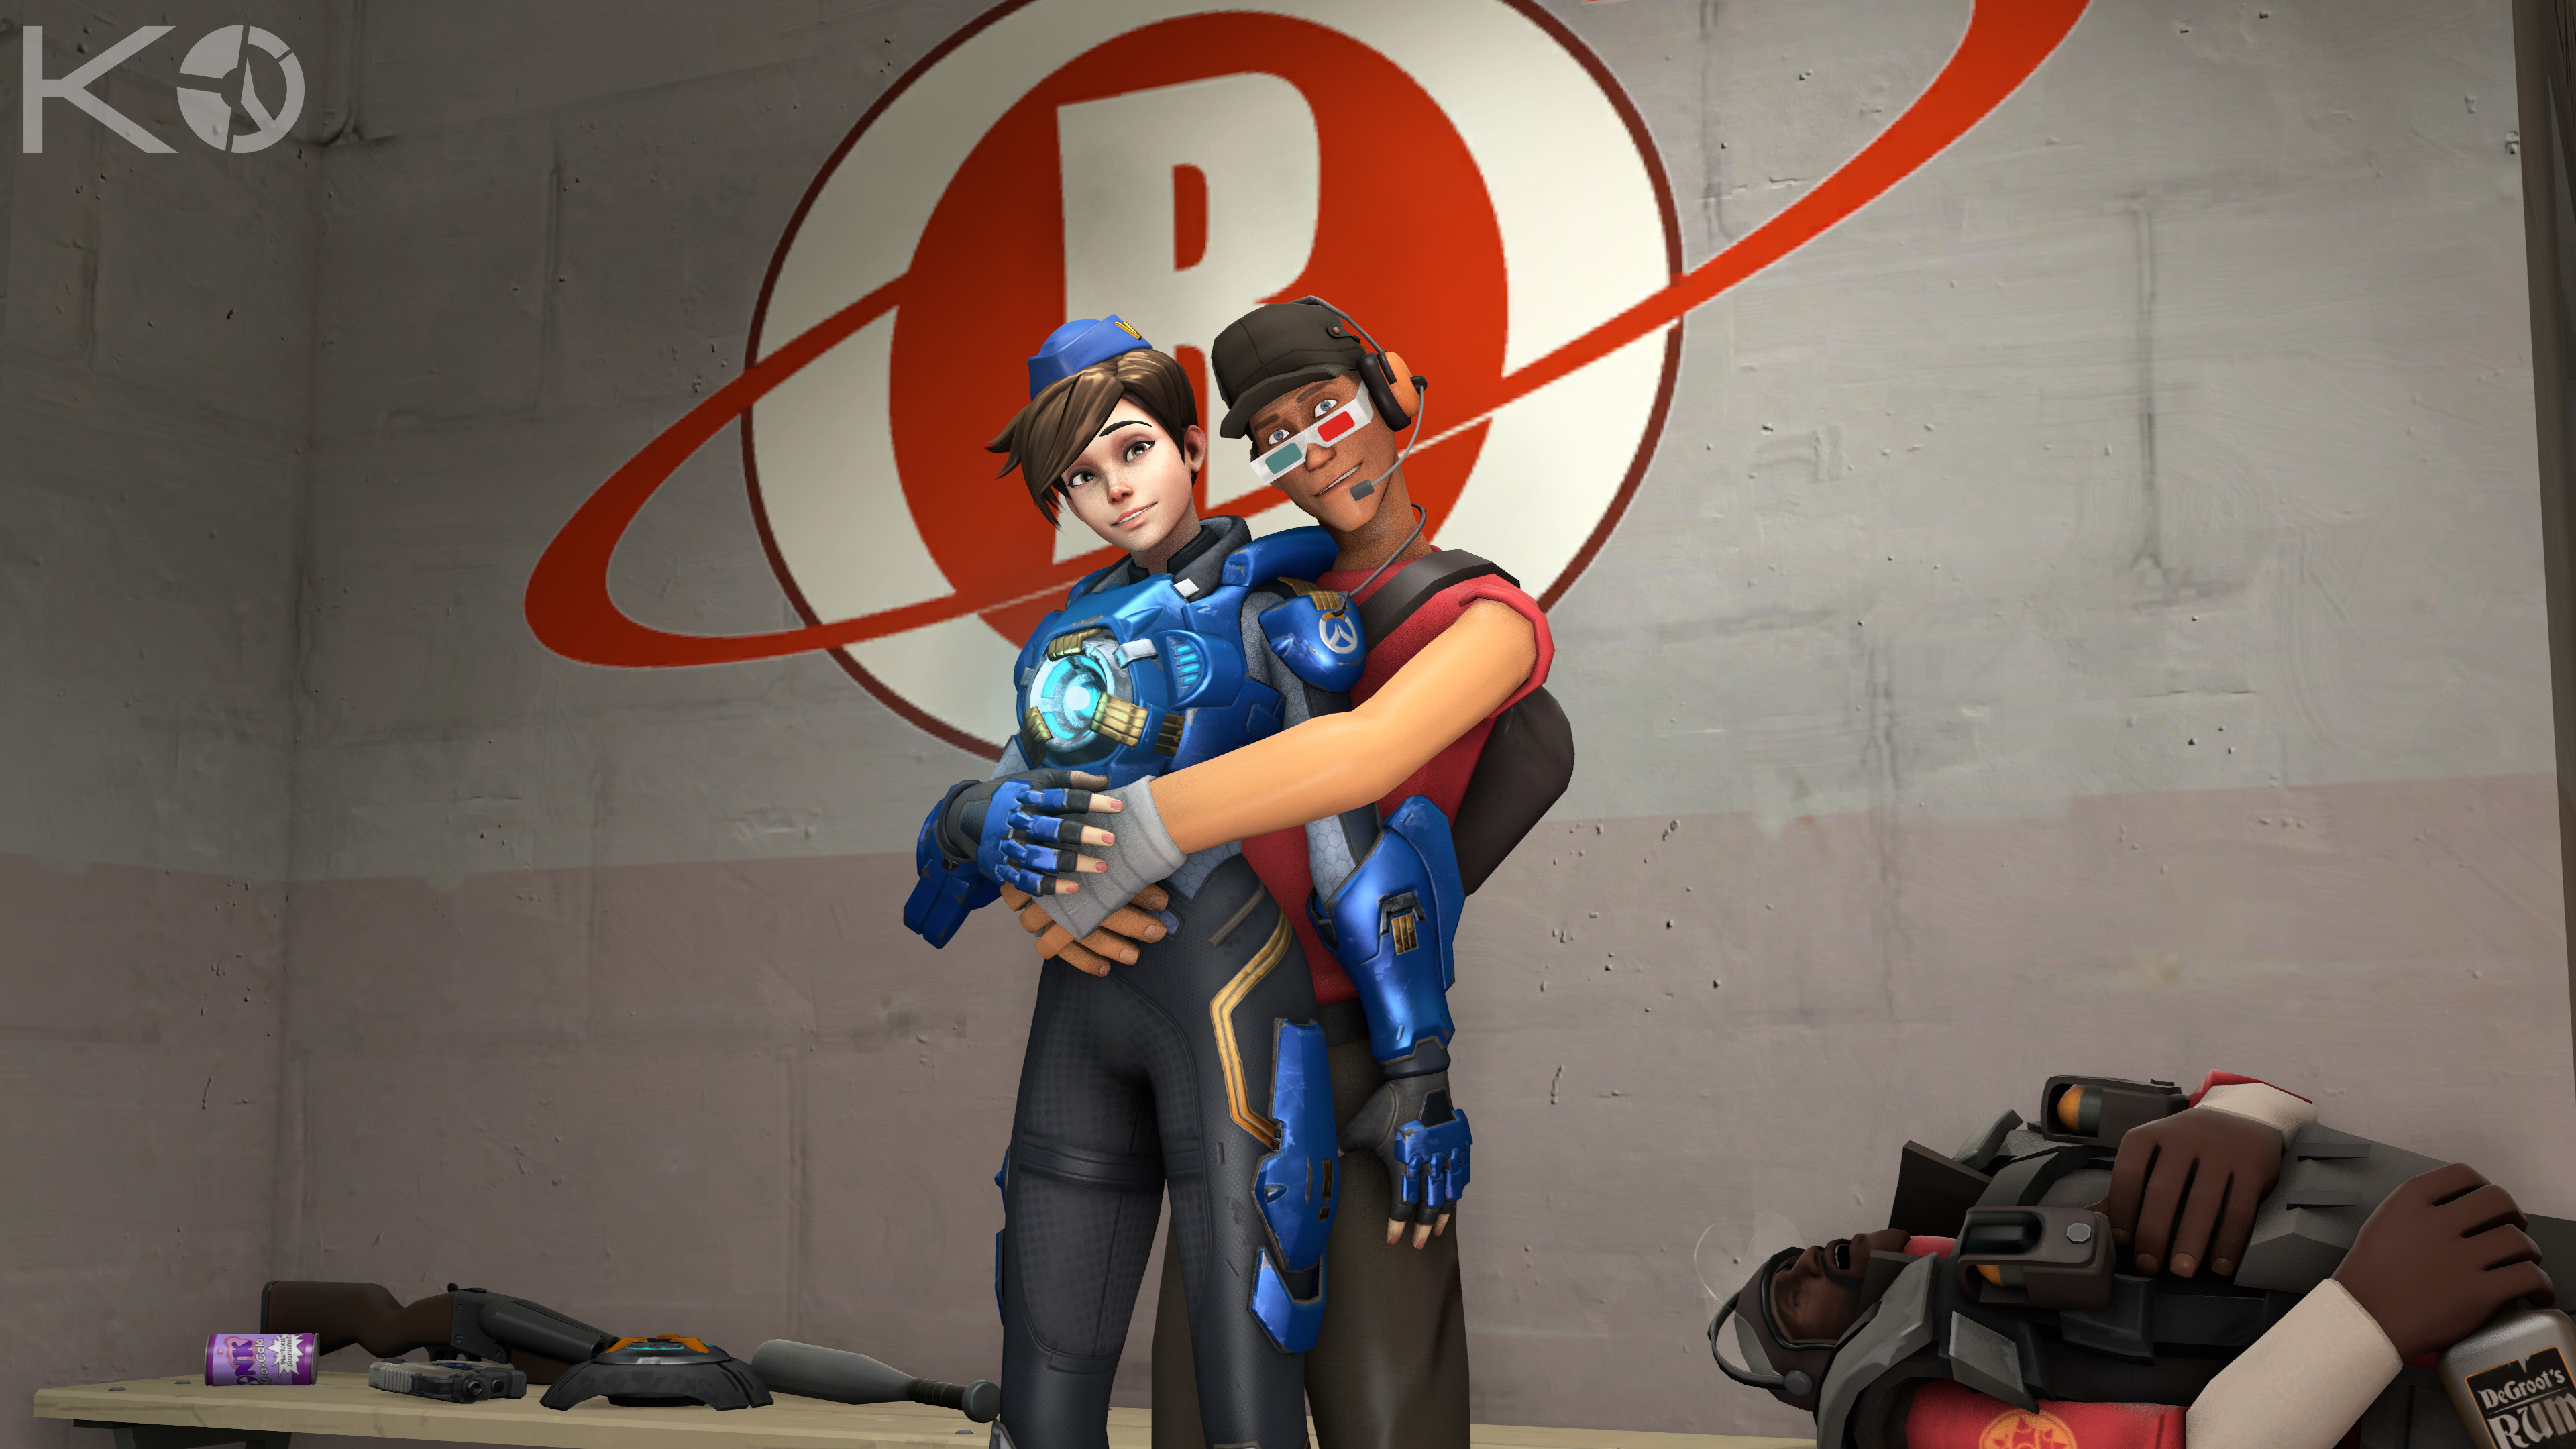 3840x2160 Video Game - Crossover Scout (Team Fortress) Tracer (Overwatch) Wallpaper